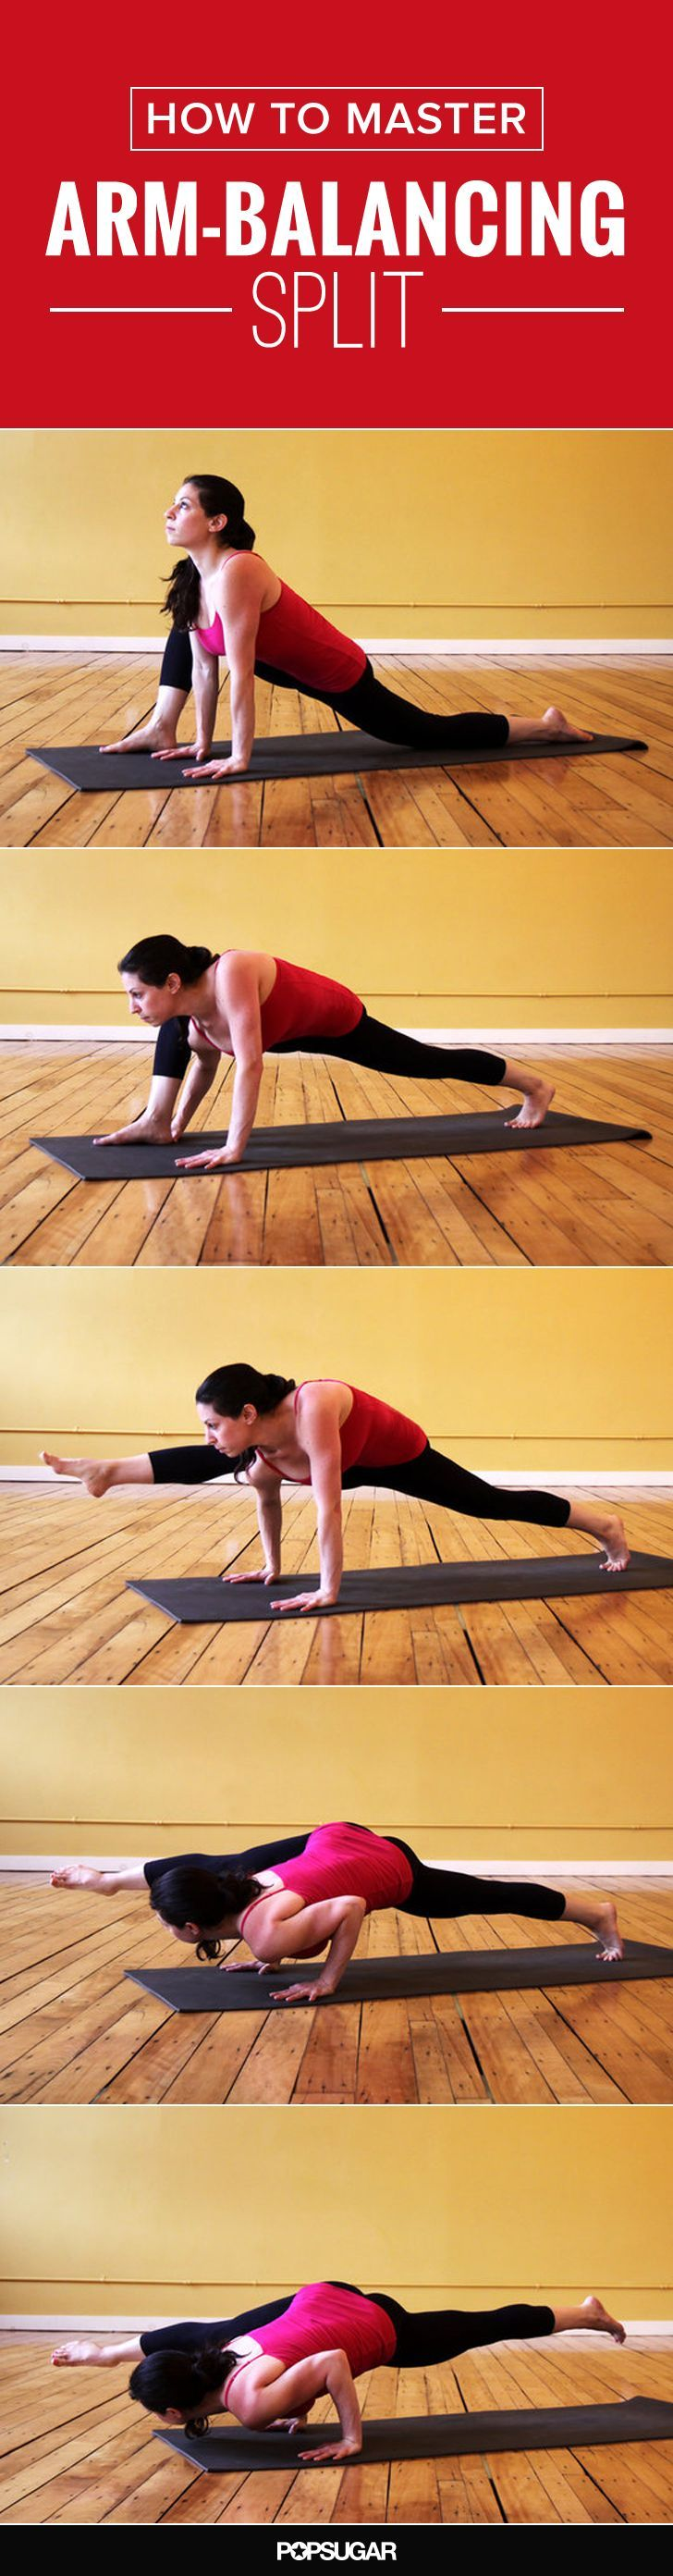 We break down how to  master the arm-balancing split. One of the poses that you can work toward in your yoga practice.